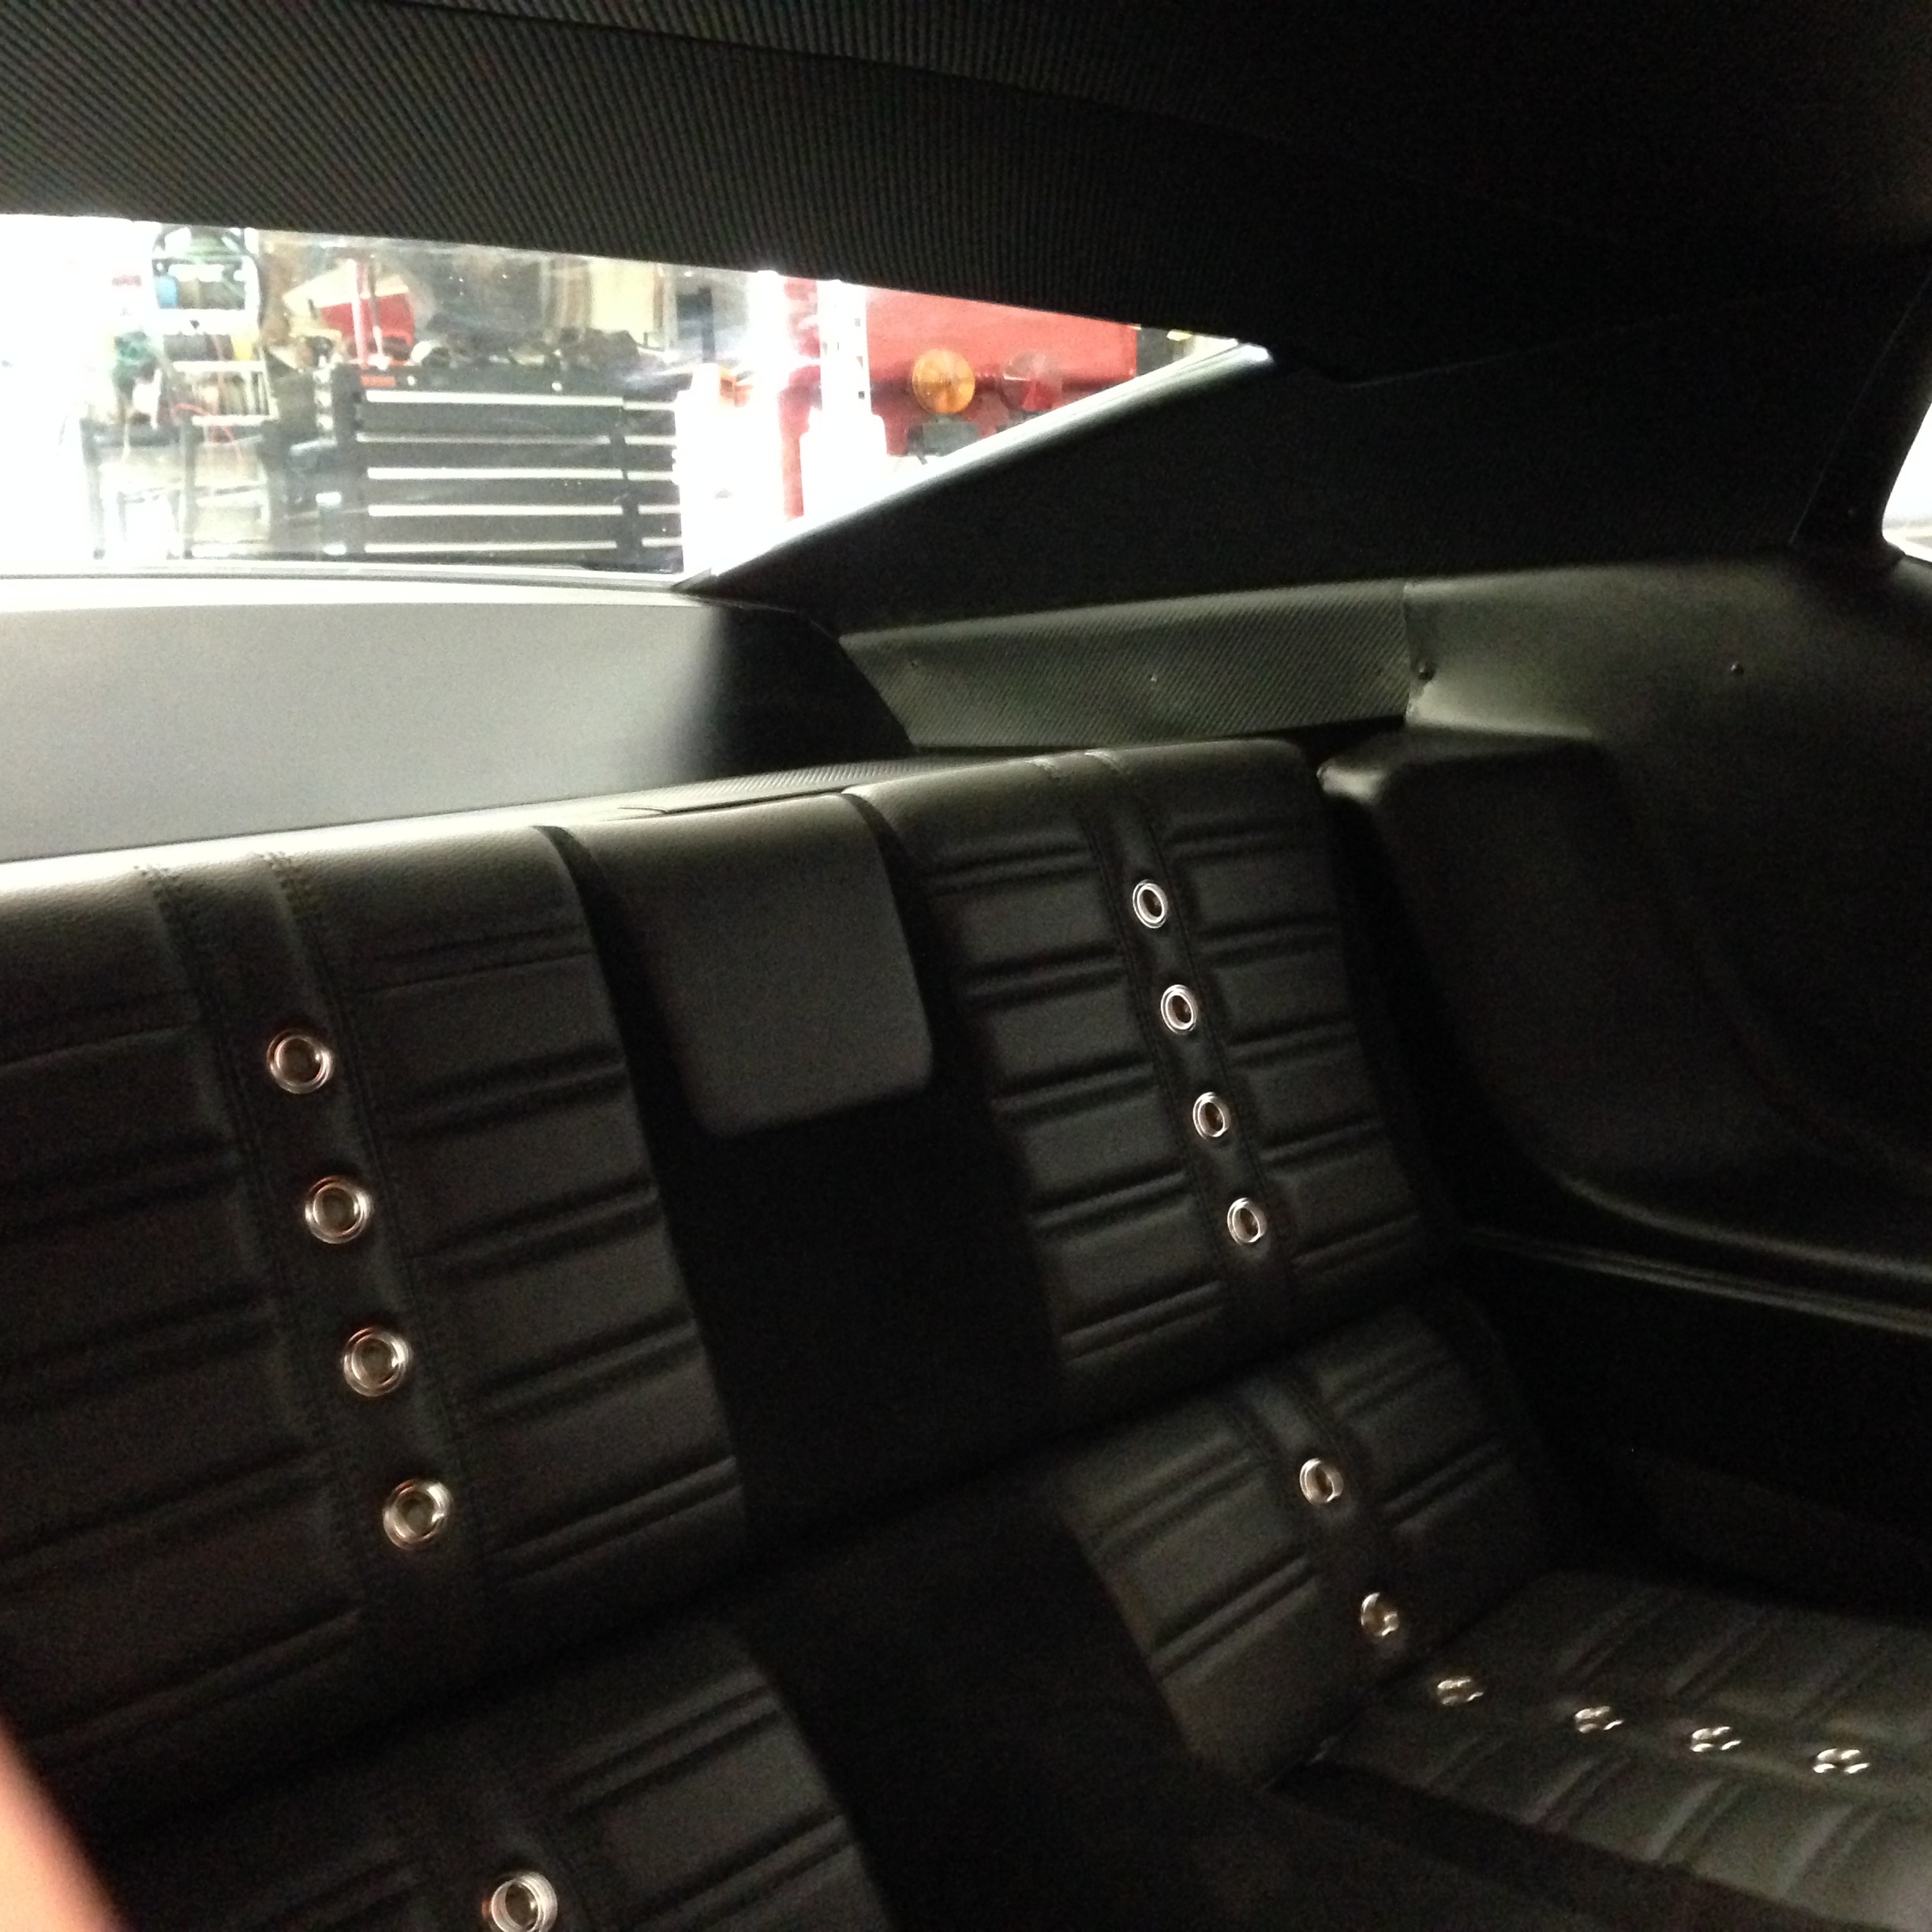 Rear seat with sail trim and package tray done in the carbon fiber vinyl that matches the headliner